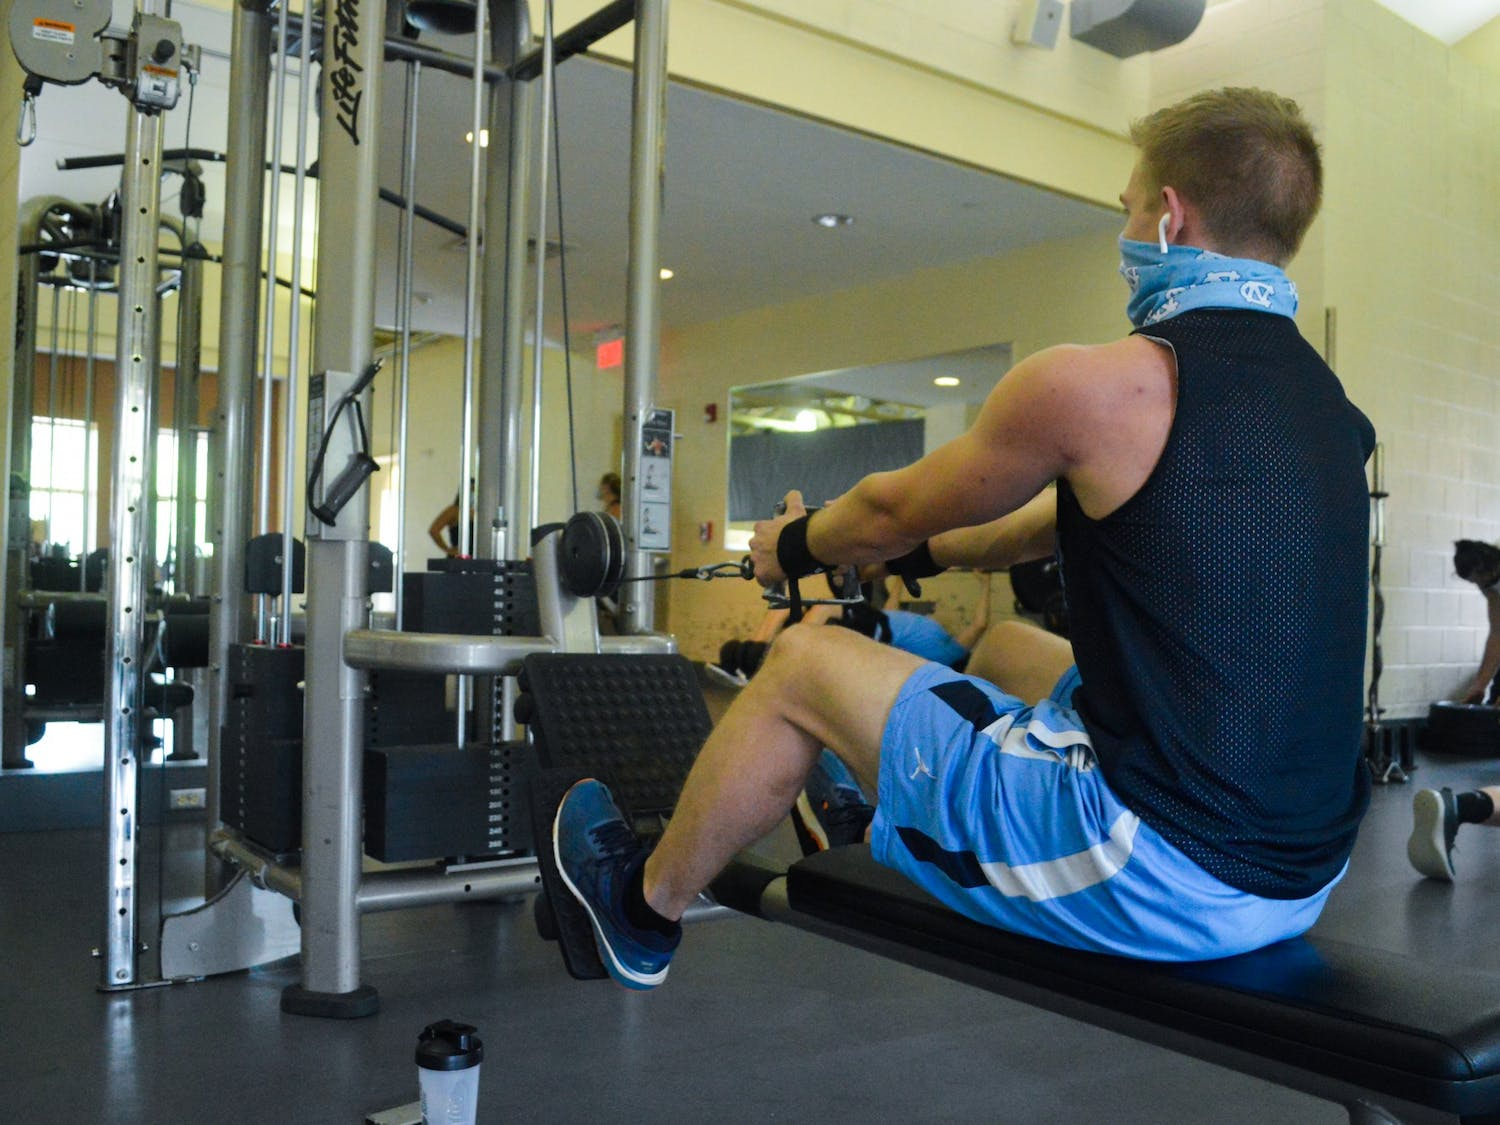 A student works out at the Ram's Head Recreation Center on Monday, Sept. 28, 2020.